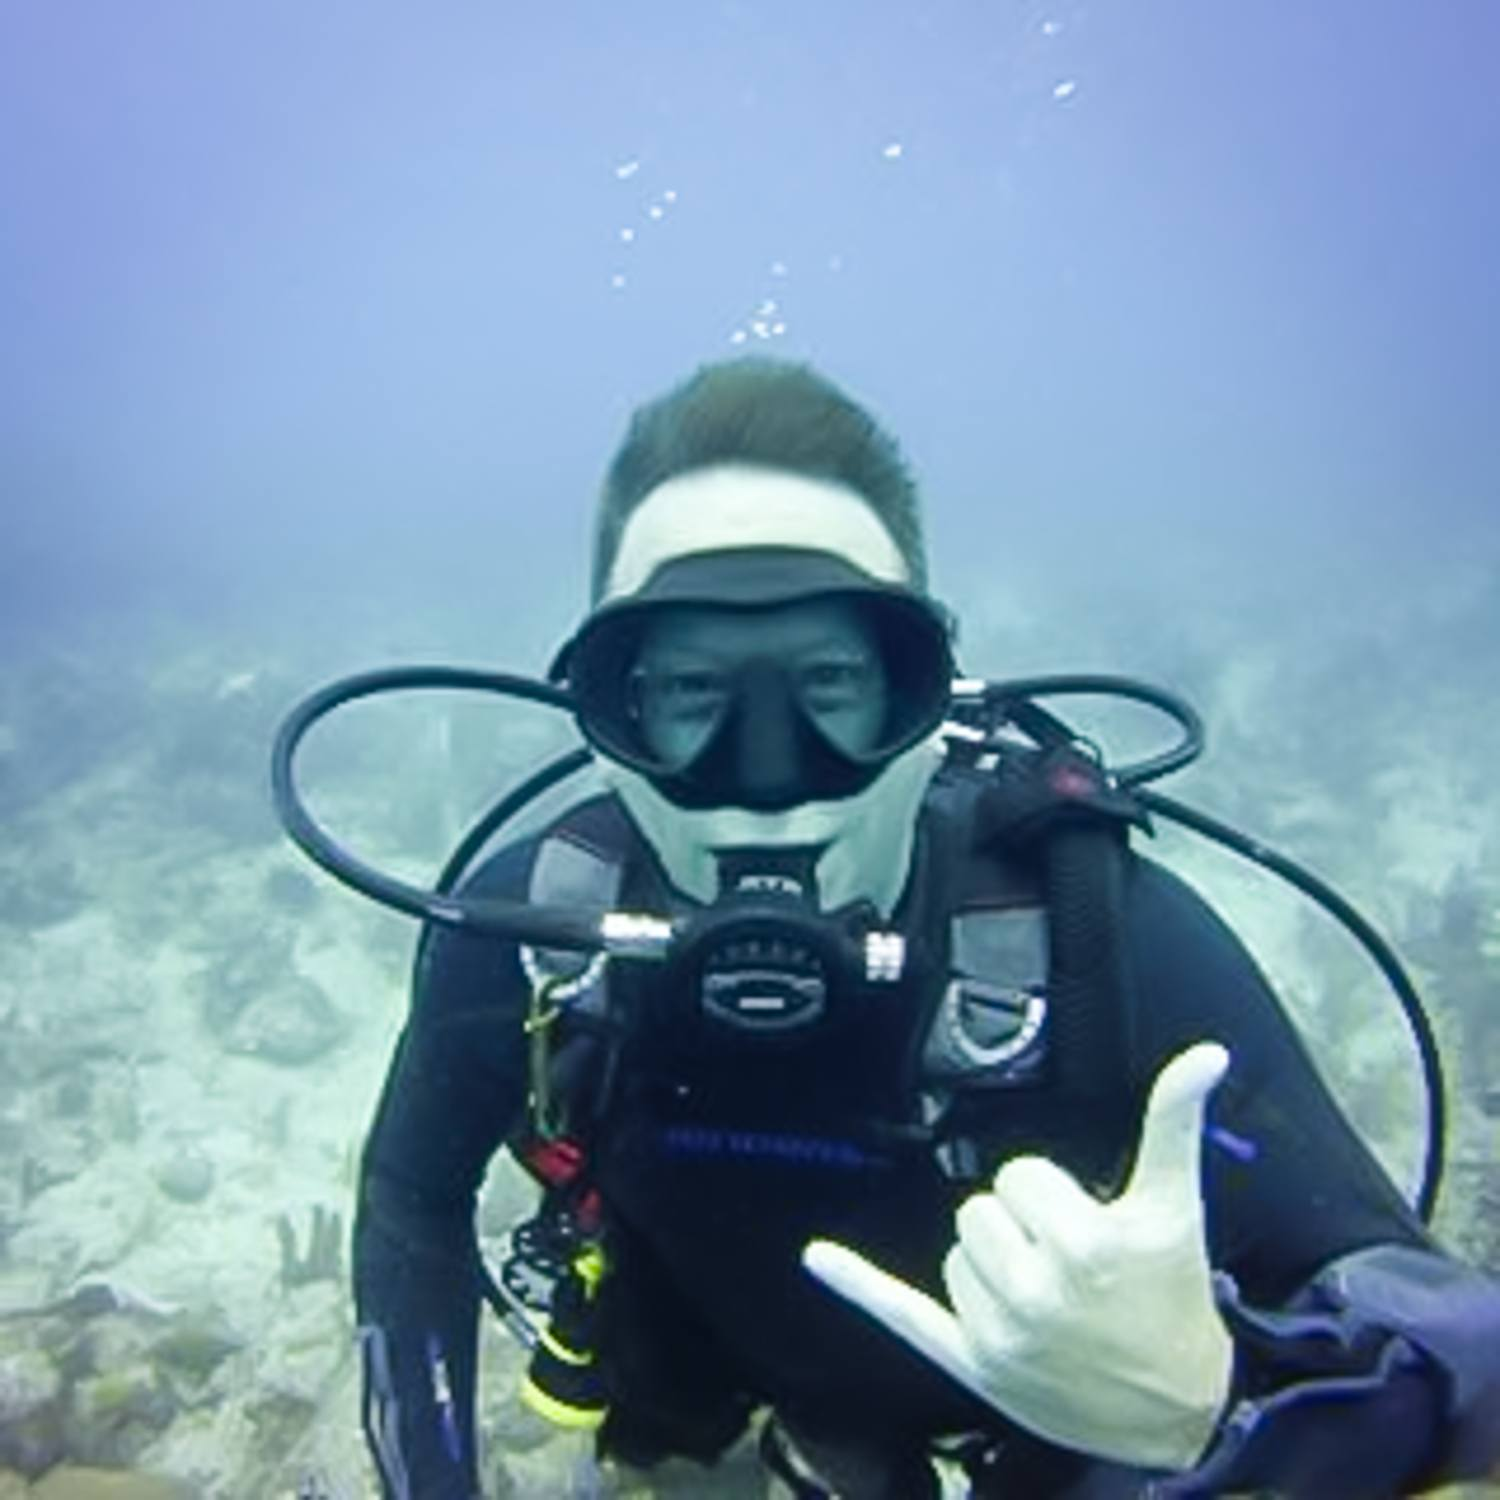 Mark scuba diving in Turks and Caicos.